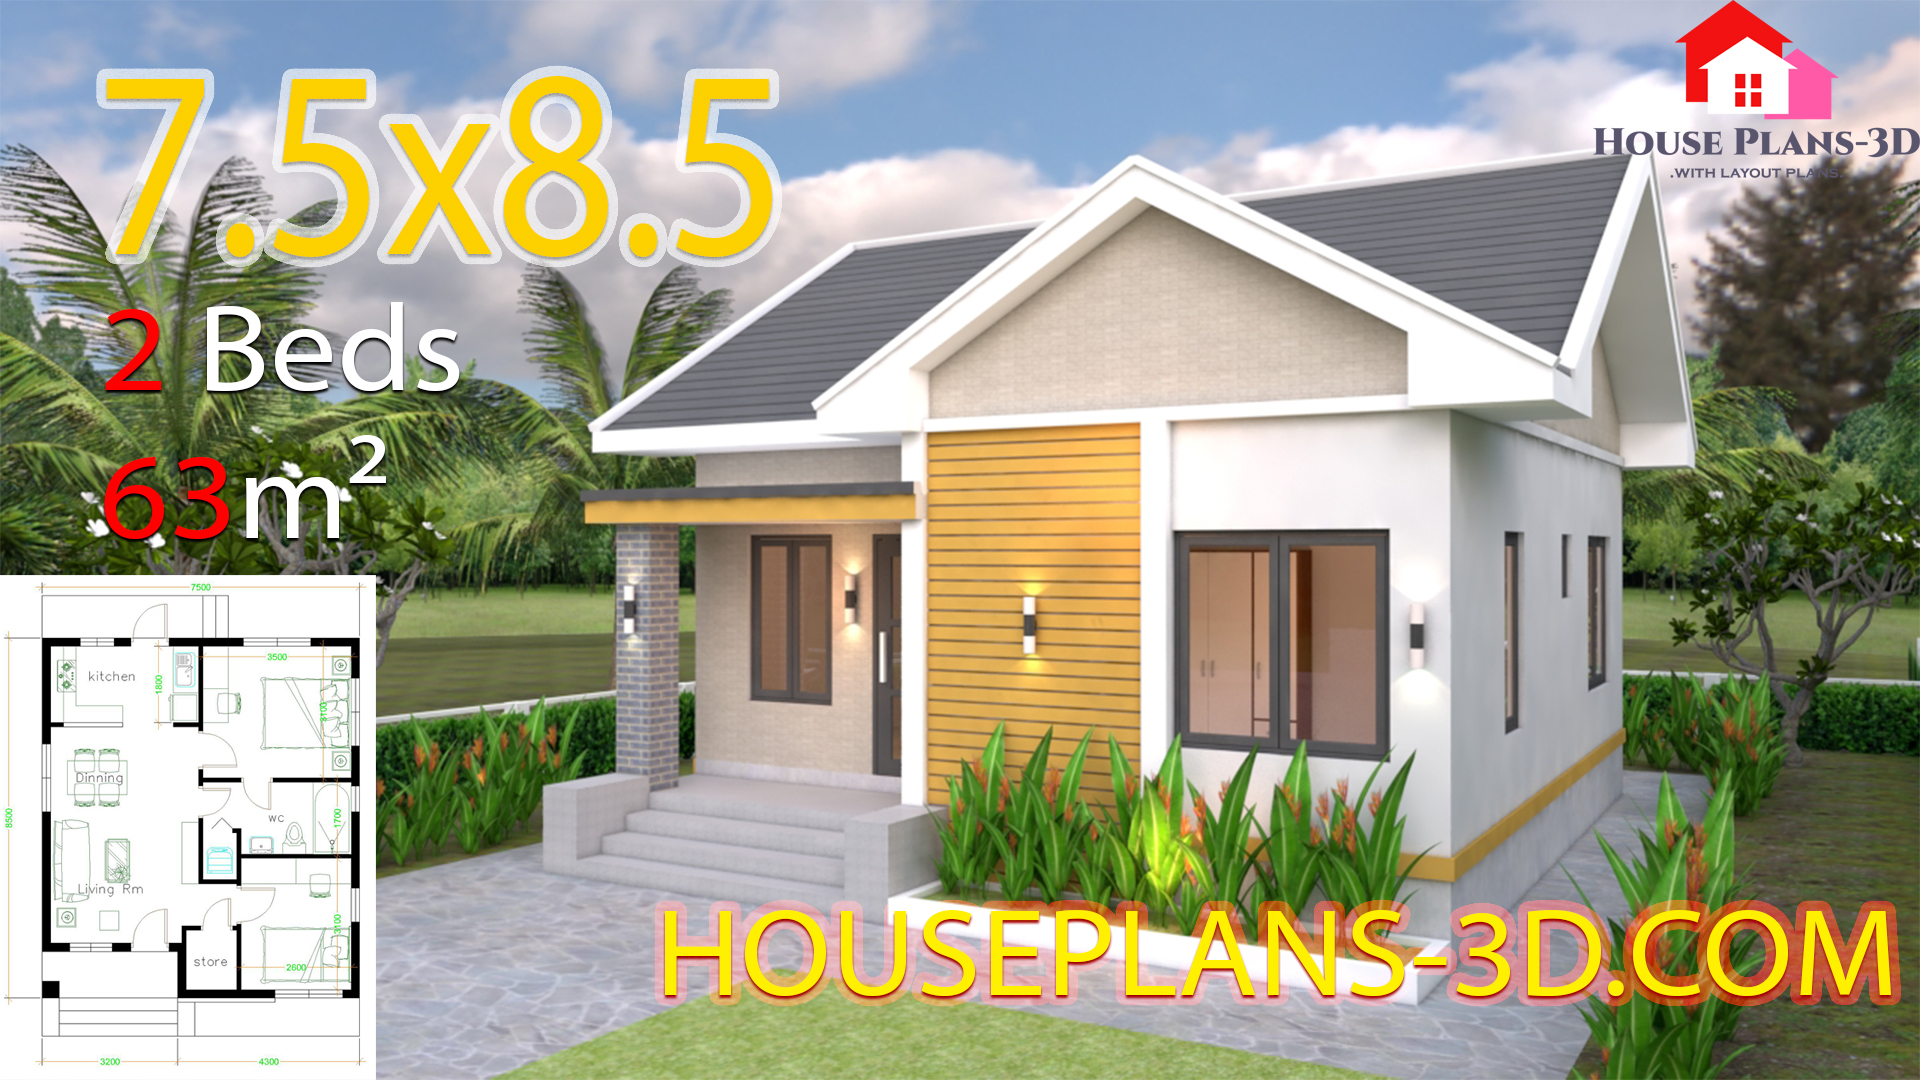 House plans 7.5x8.5m with 2 bedrooms Gable roof - House Plans 3D